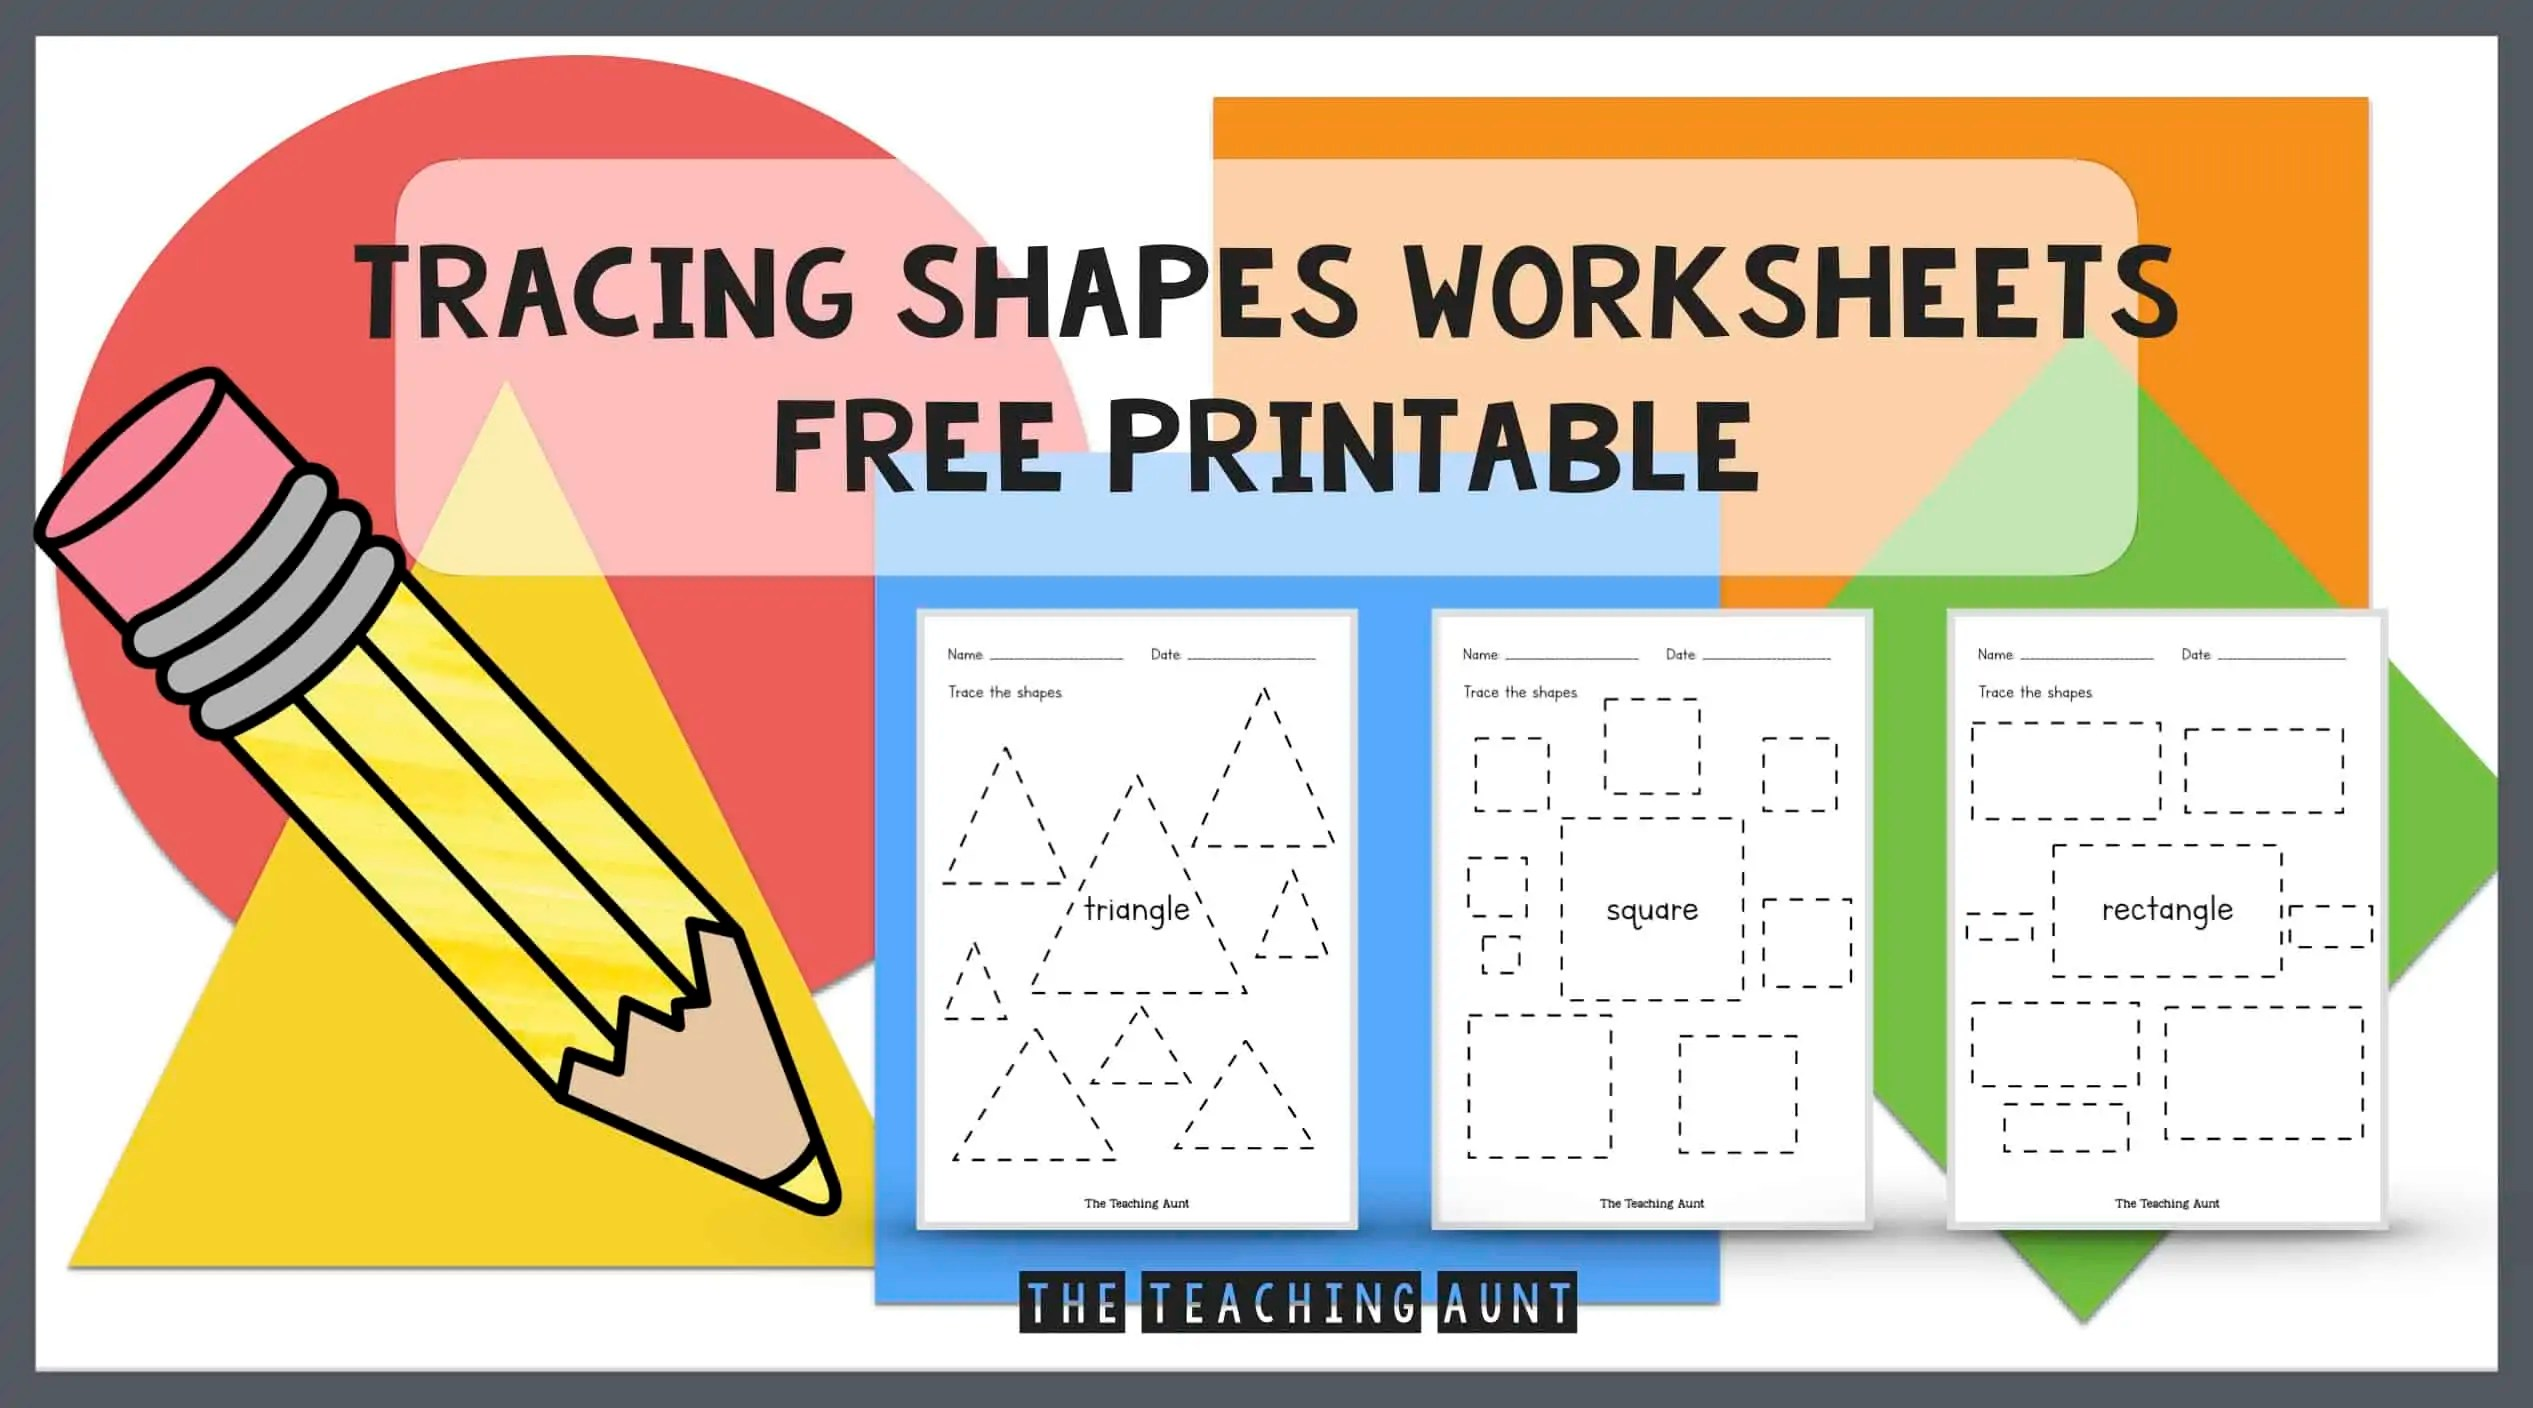 Shapes Tracing Worksheets Free Printable - The Teaching Aunt